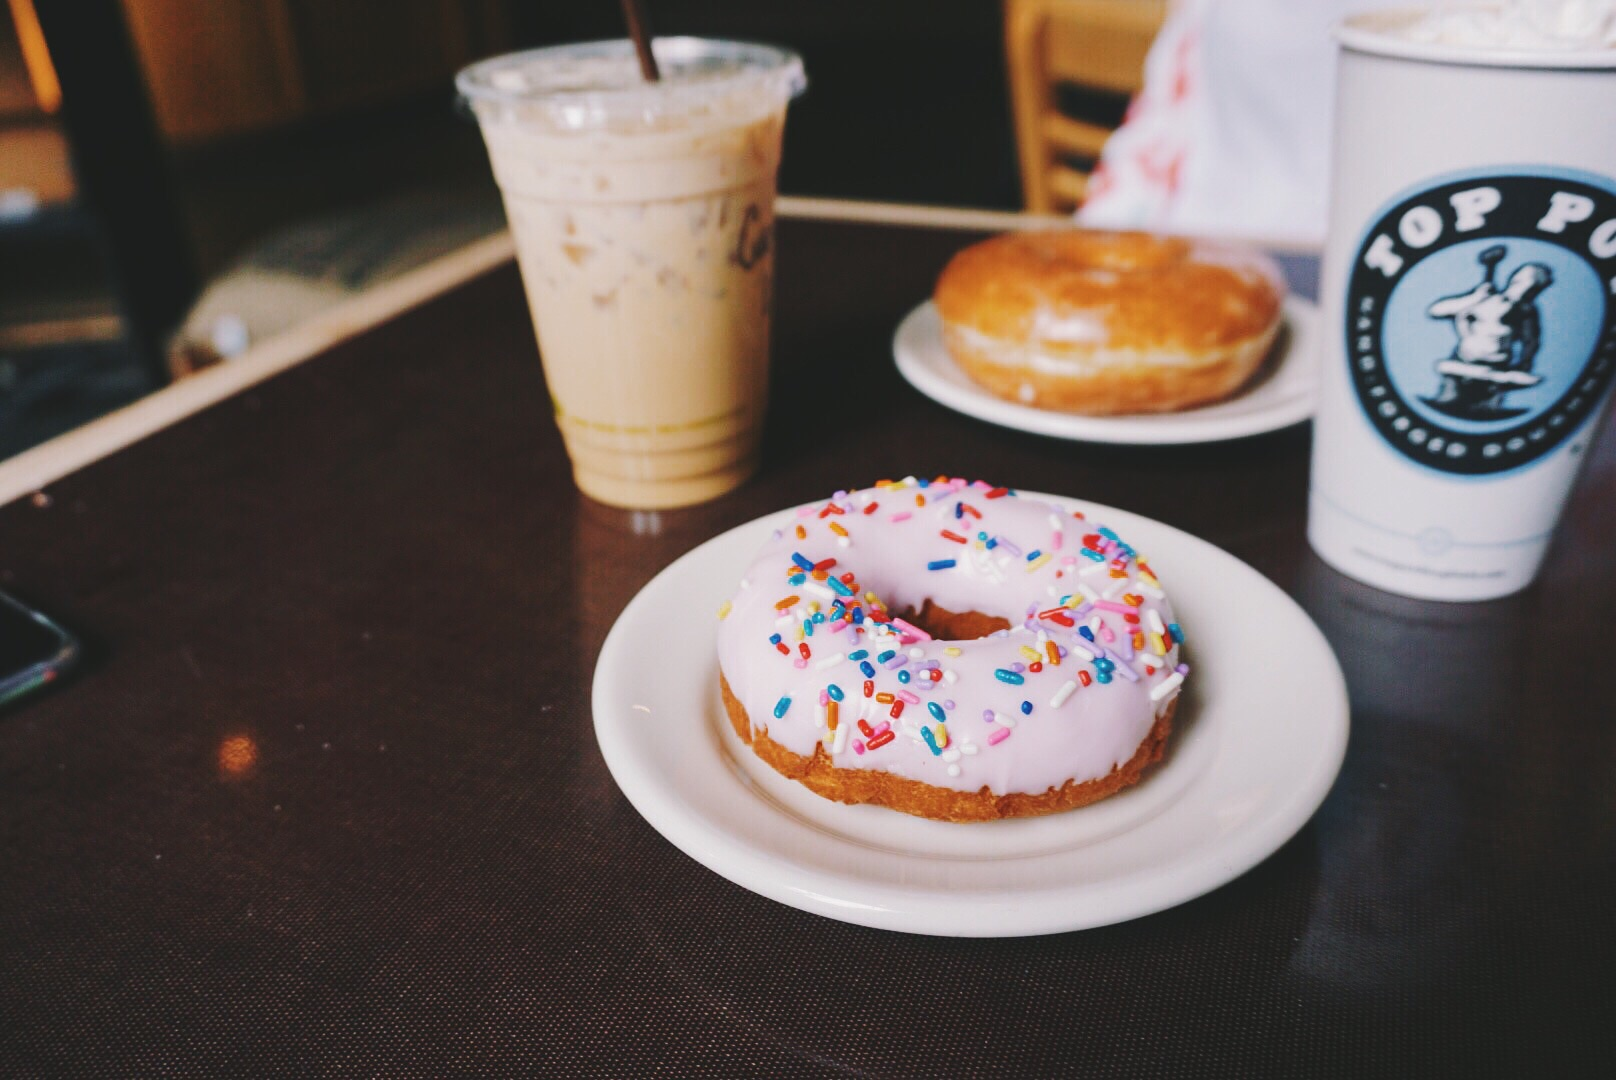 Top Pot Doughnuts quickly became a ritual for us.